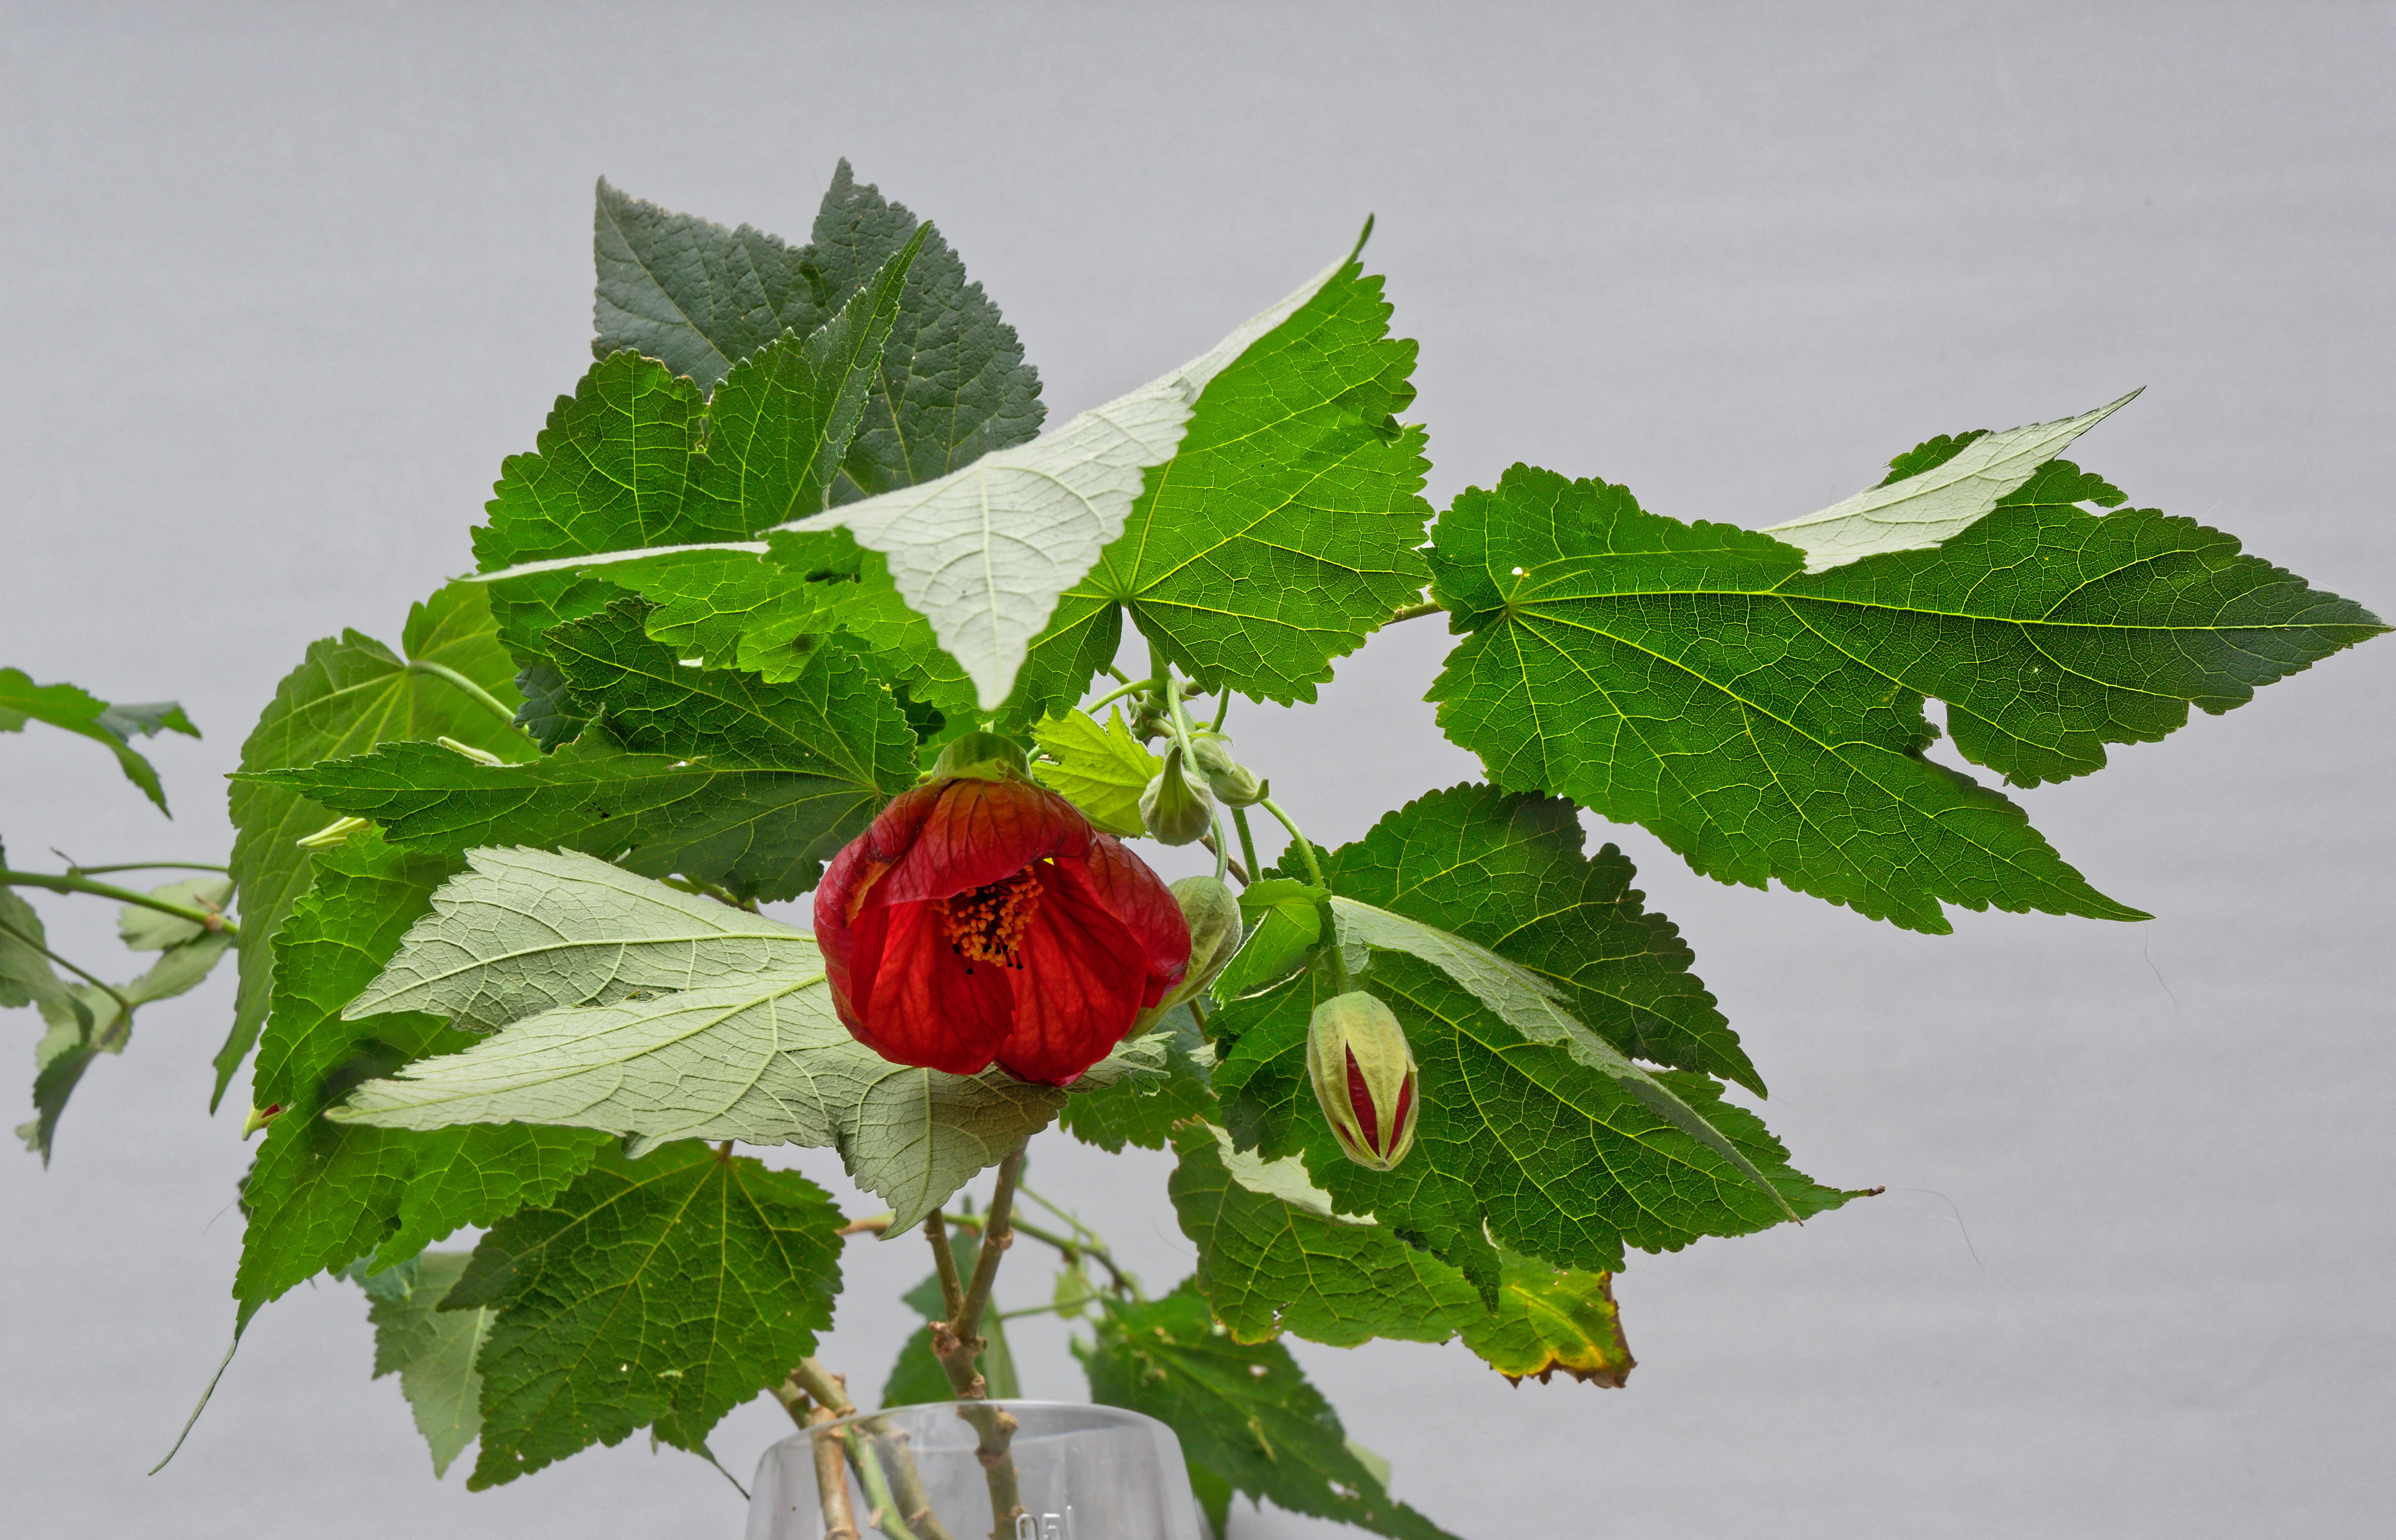 This should be Abutilon-5.jpeg.  Is it missing?